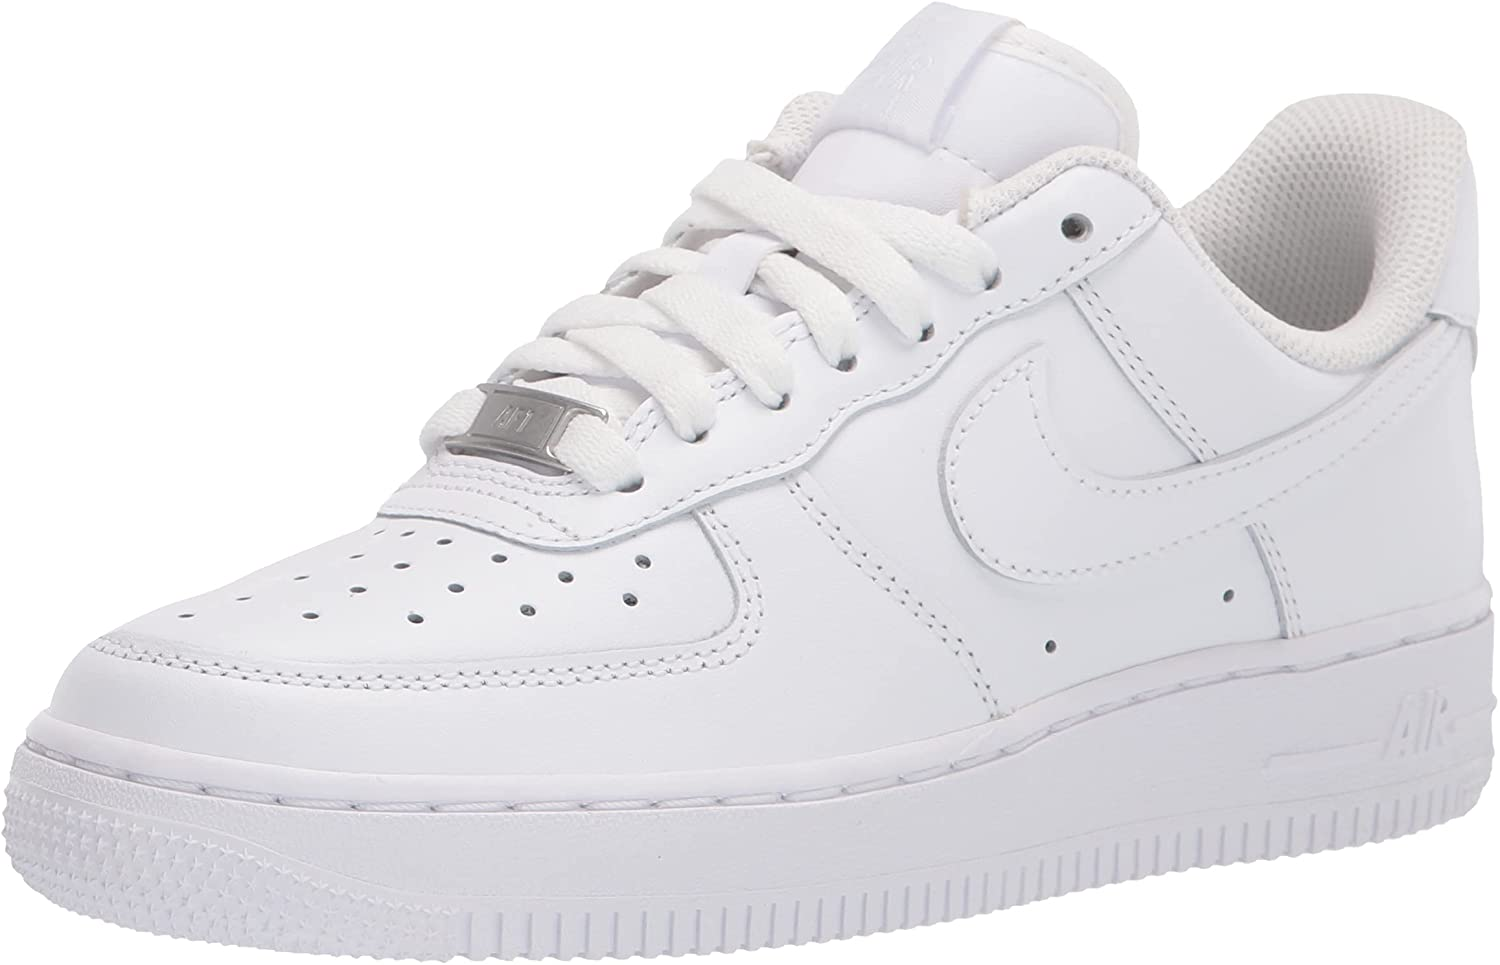 | Nike Women's Air Force 1 '07 Shoes | Basketball